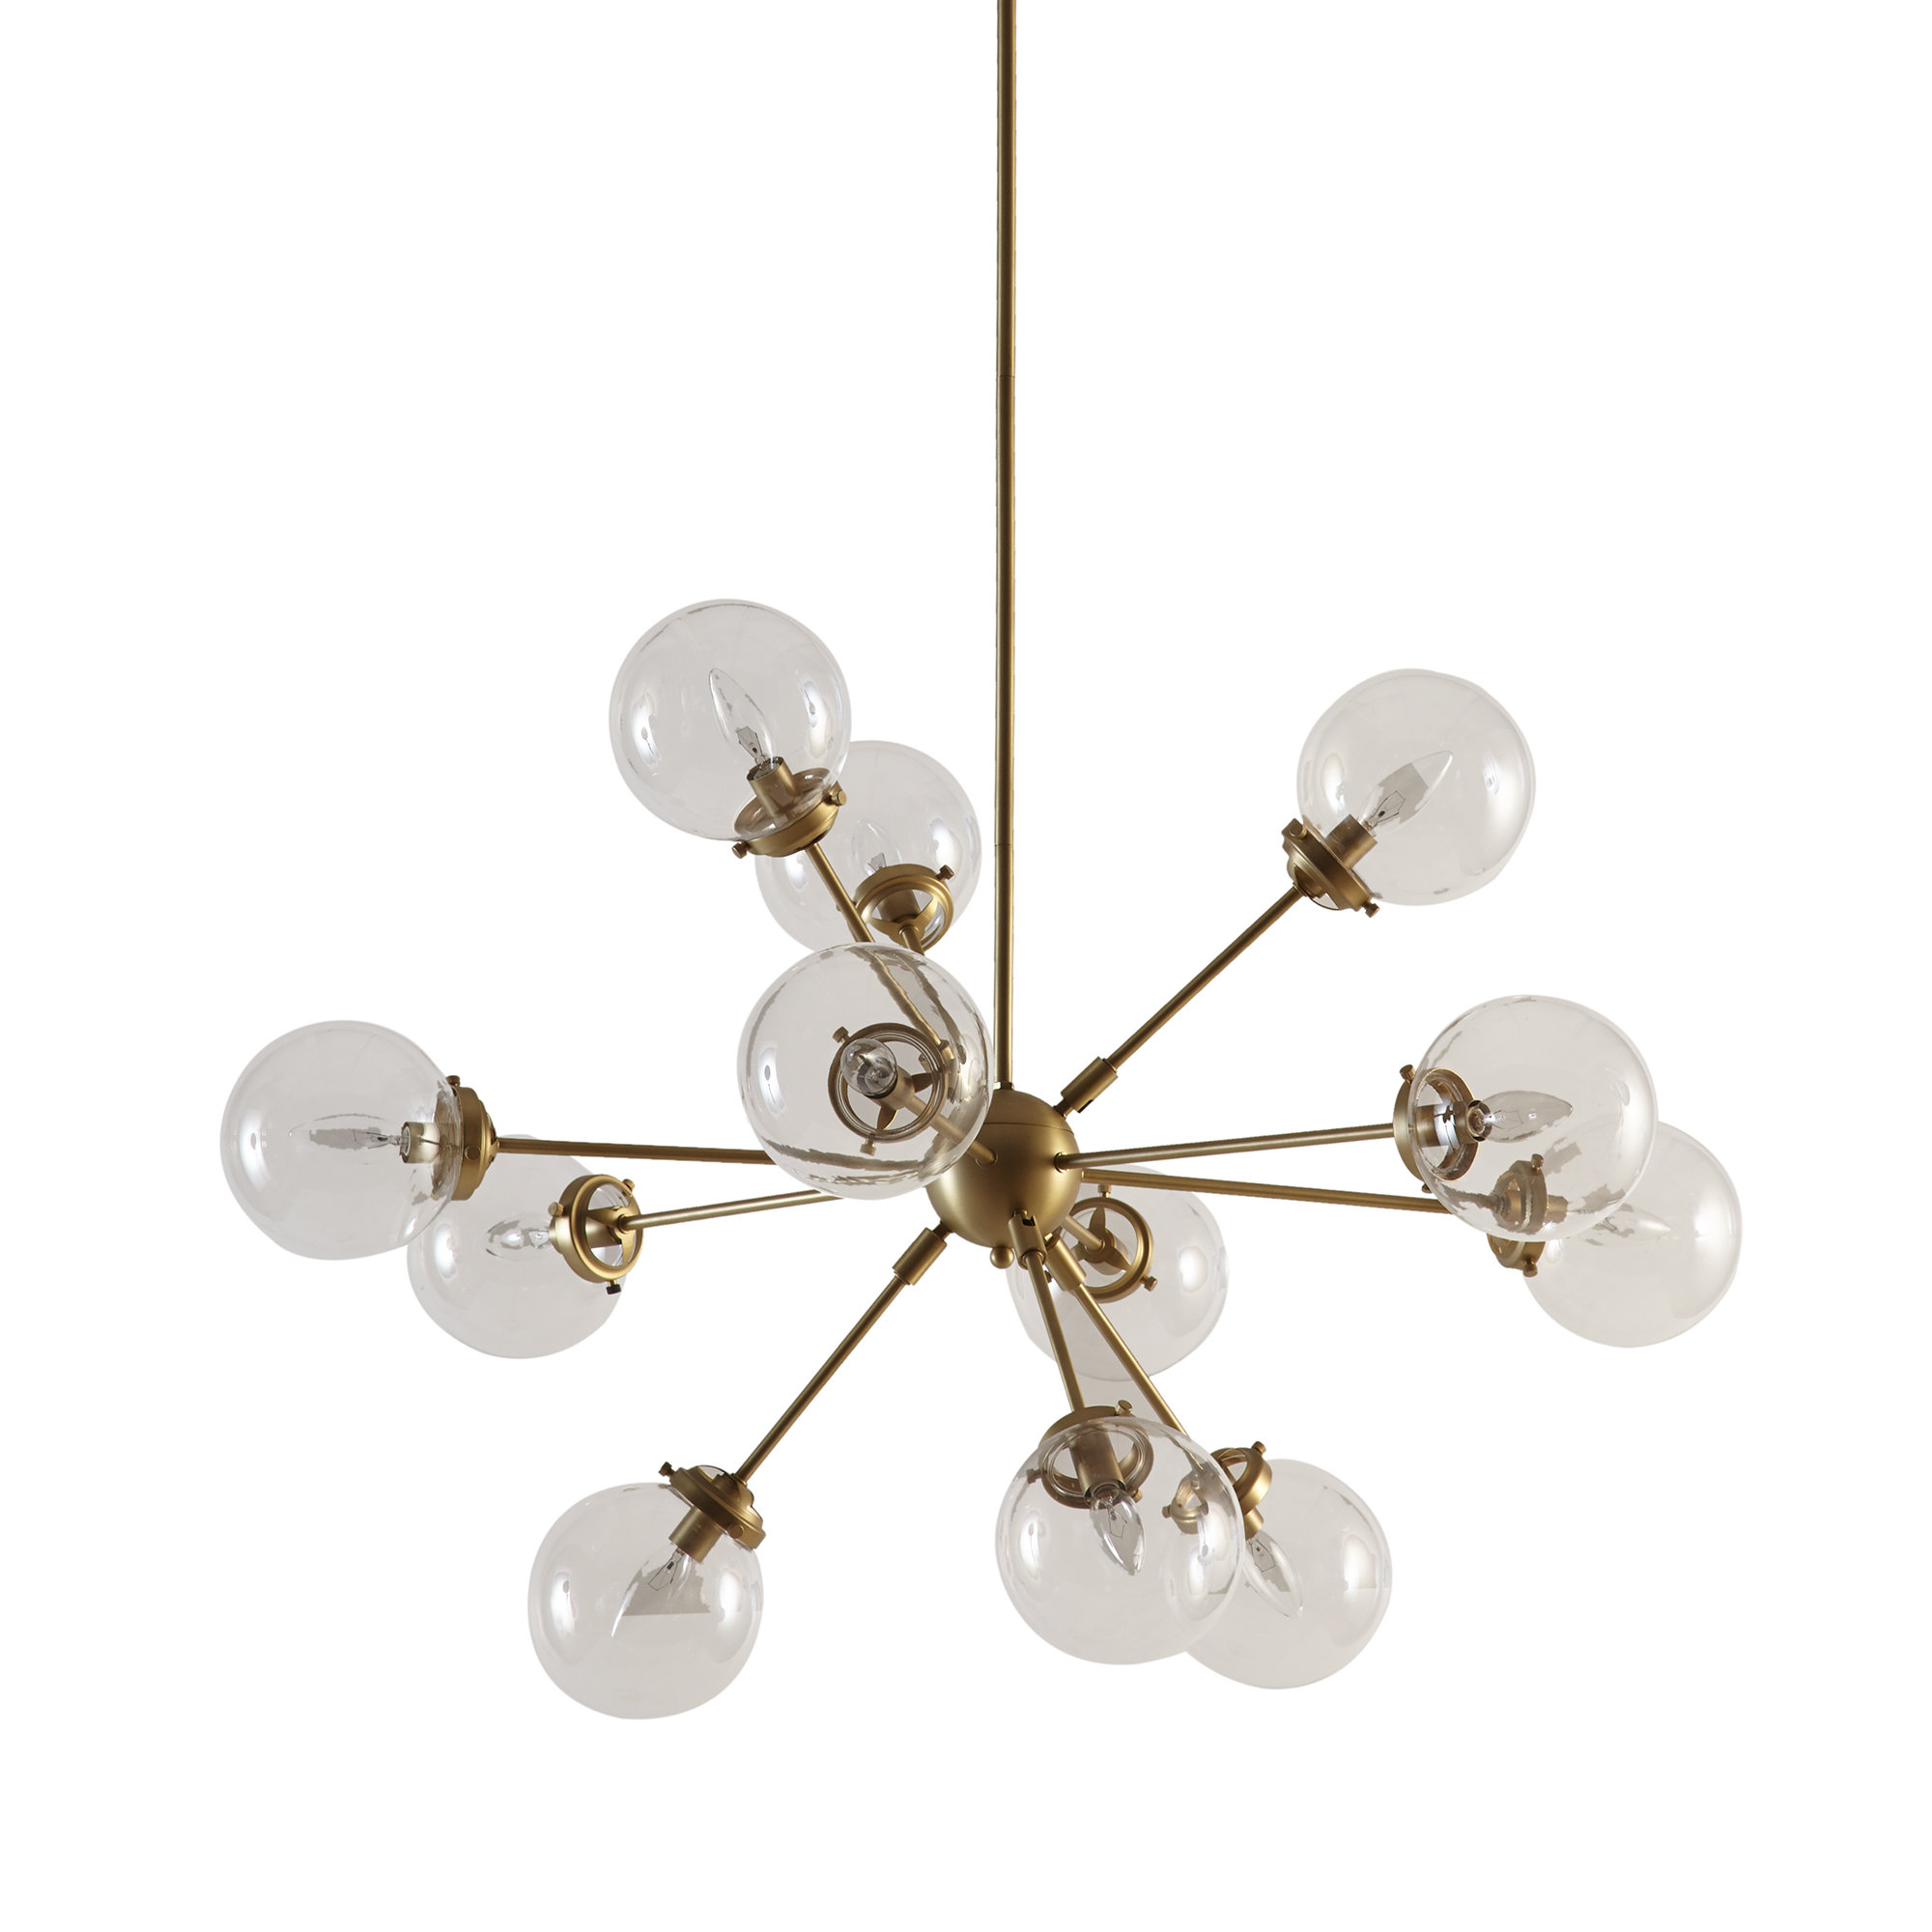 Preferred Corona 12 Light Sputnik Chandeliers Throughout Asher 12 Light Sputnik Chandelier (View 4 of 25)